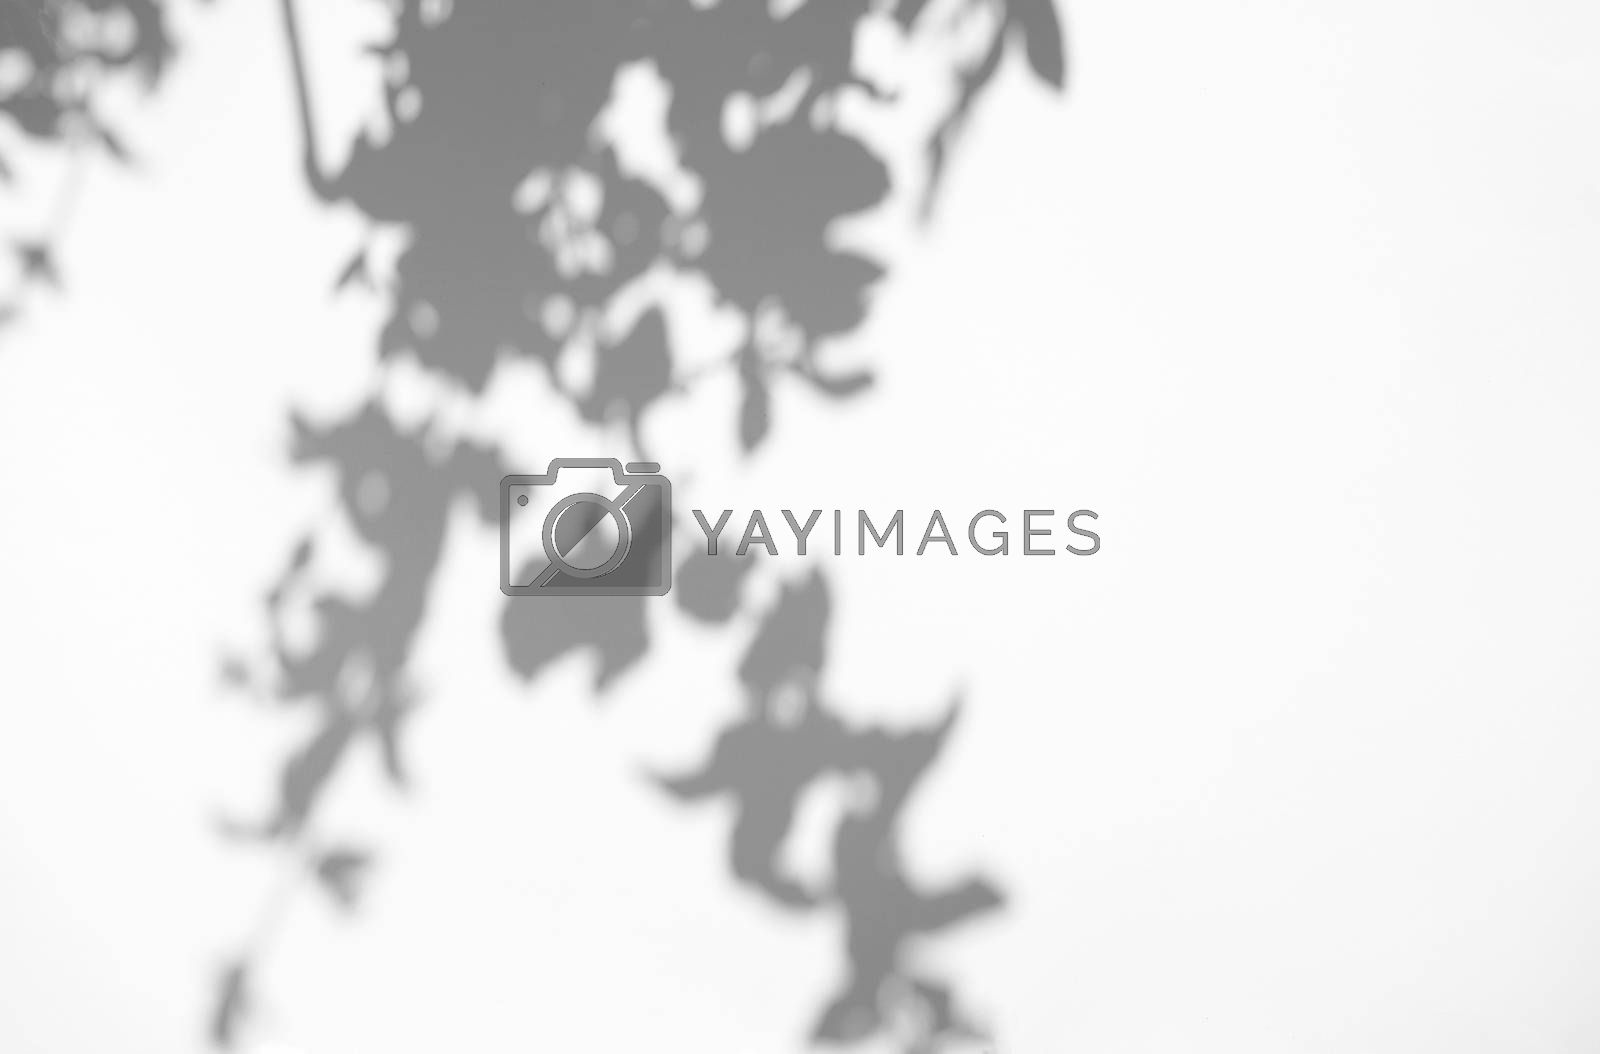 Leaves natural shadow overlay on white texture background, for overlay on product presentation, backdrop and mockup, summer seasonal concept, minimal trend style